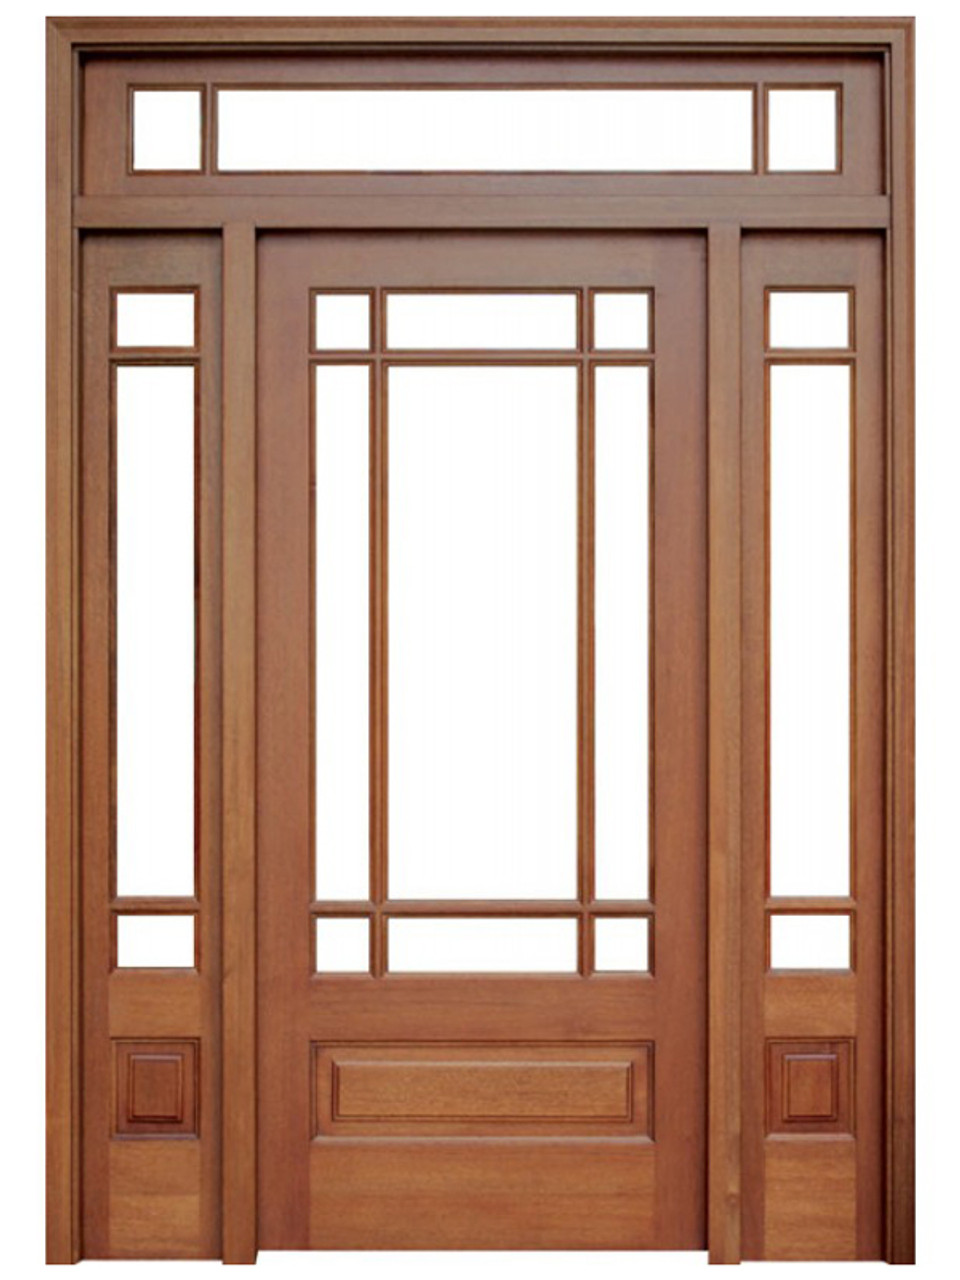 Mahogany Madison Single Wood Entry Door With 2 Sidelights And Transom By Door Stores Of America Shop Doors And Home Hardware